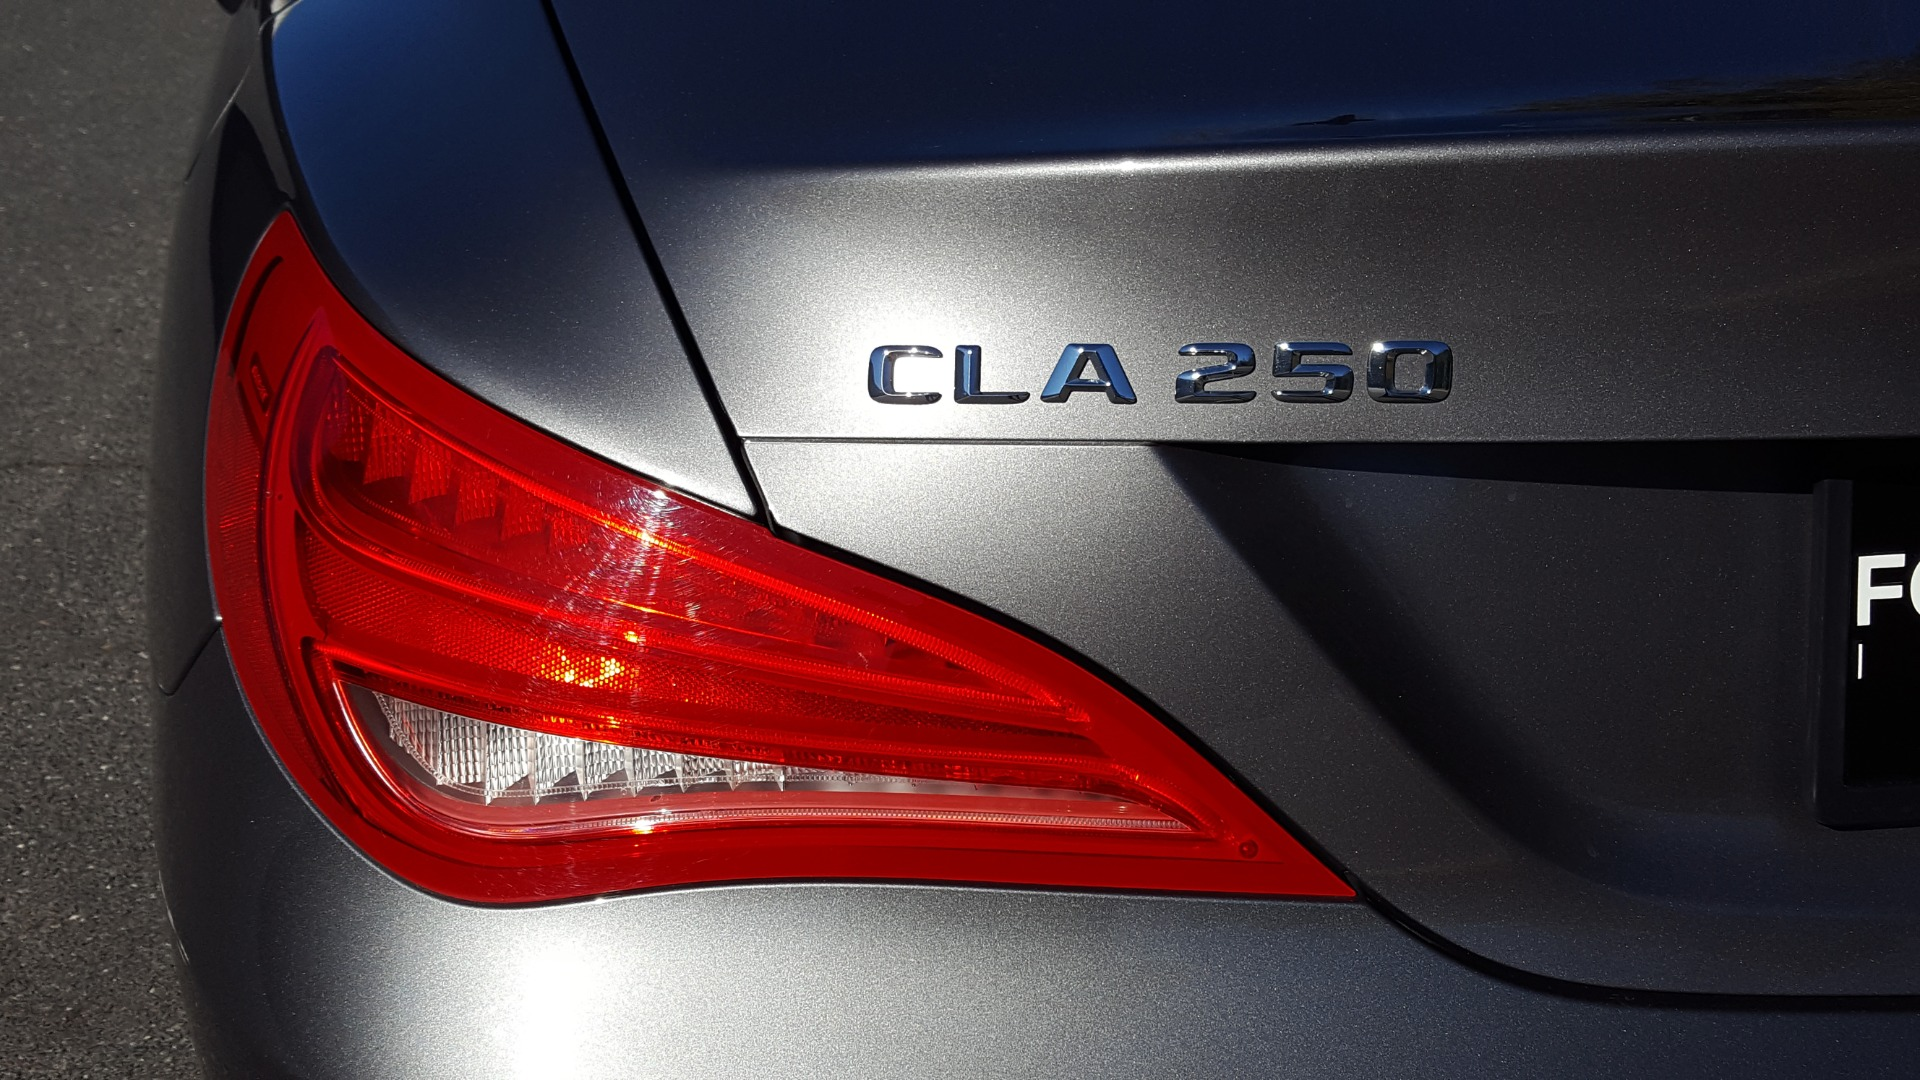 Used 2014 Mercedes-Benz CLA-CLASS CLA 250 / NAV / PANO-ROOF / BLIND SPOT ASSIST / XENON HEADLIGHTS for sale $19,995 at Formula Imports in Charlotte NC 28227 9